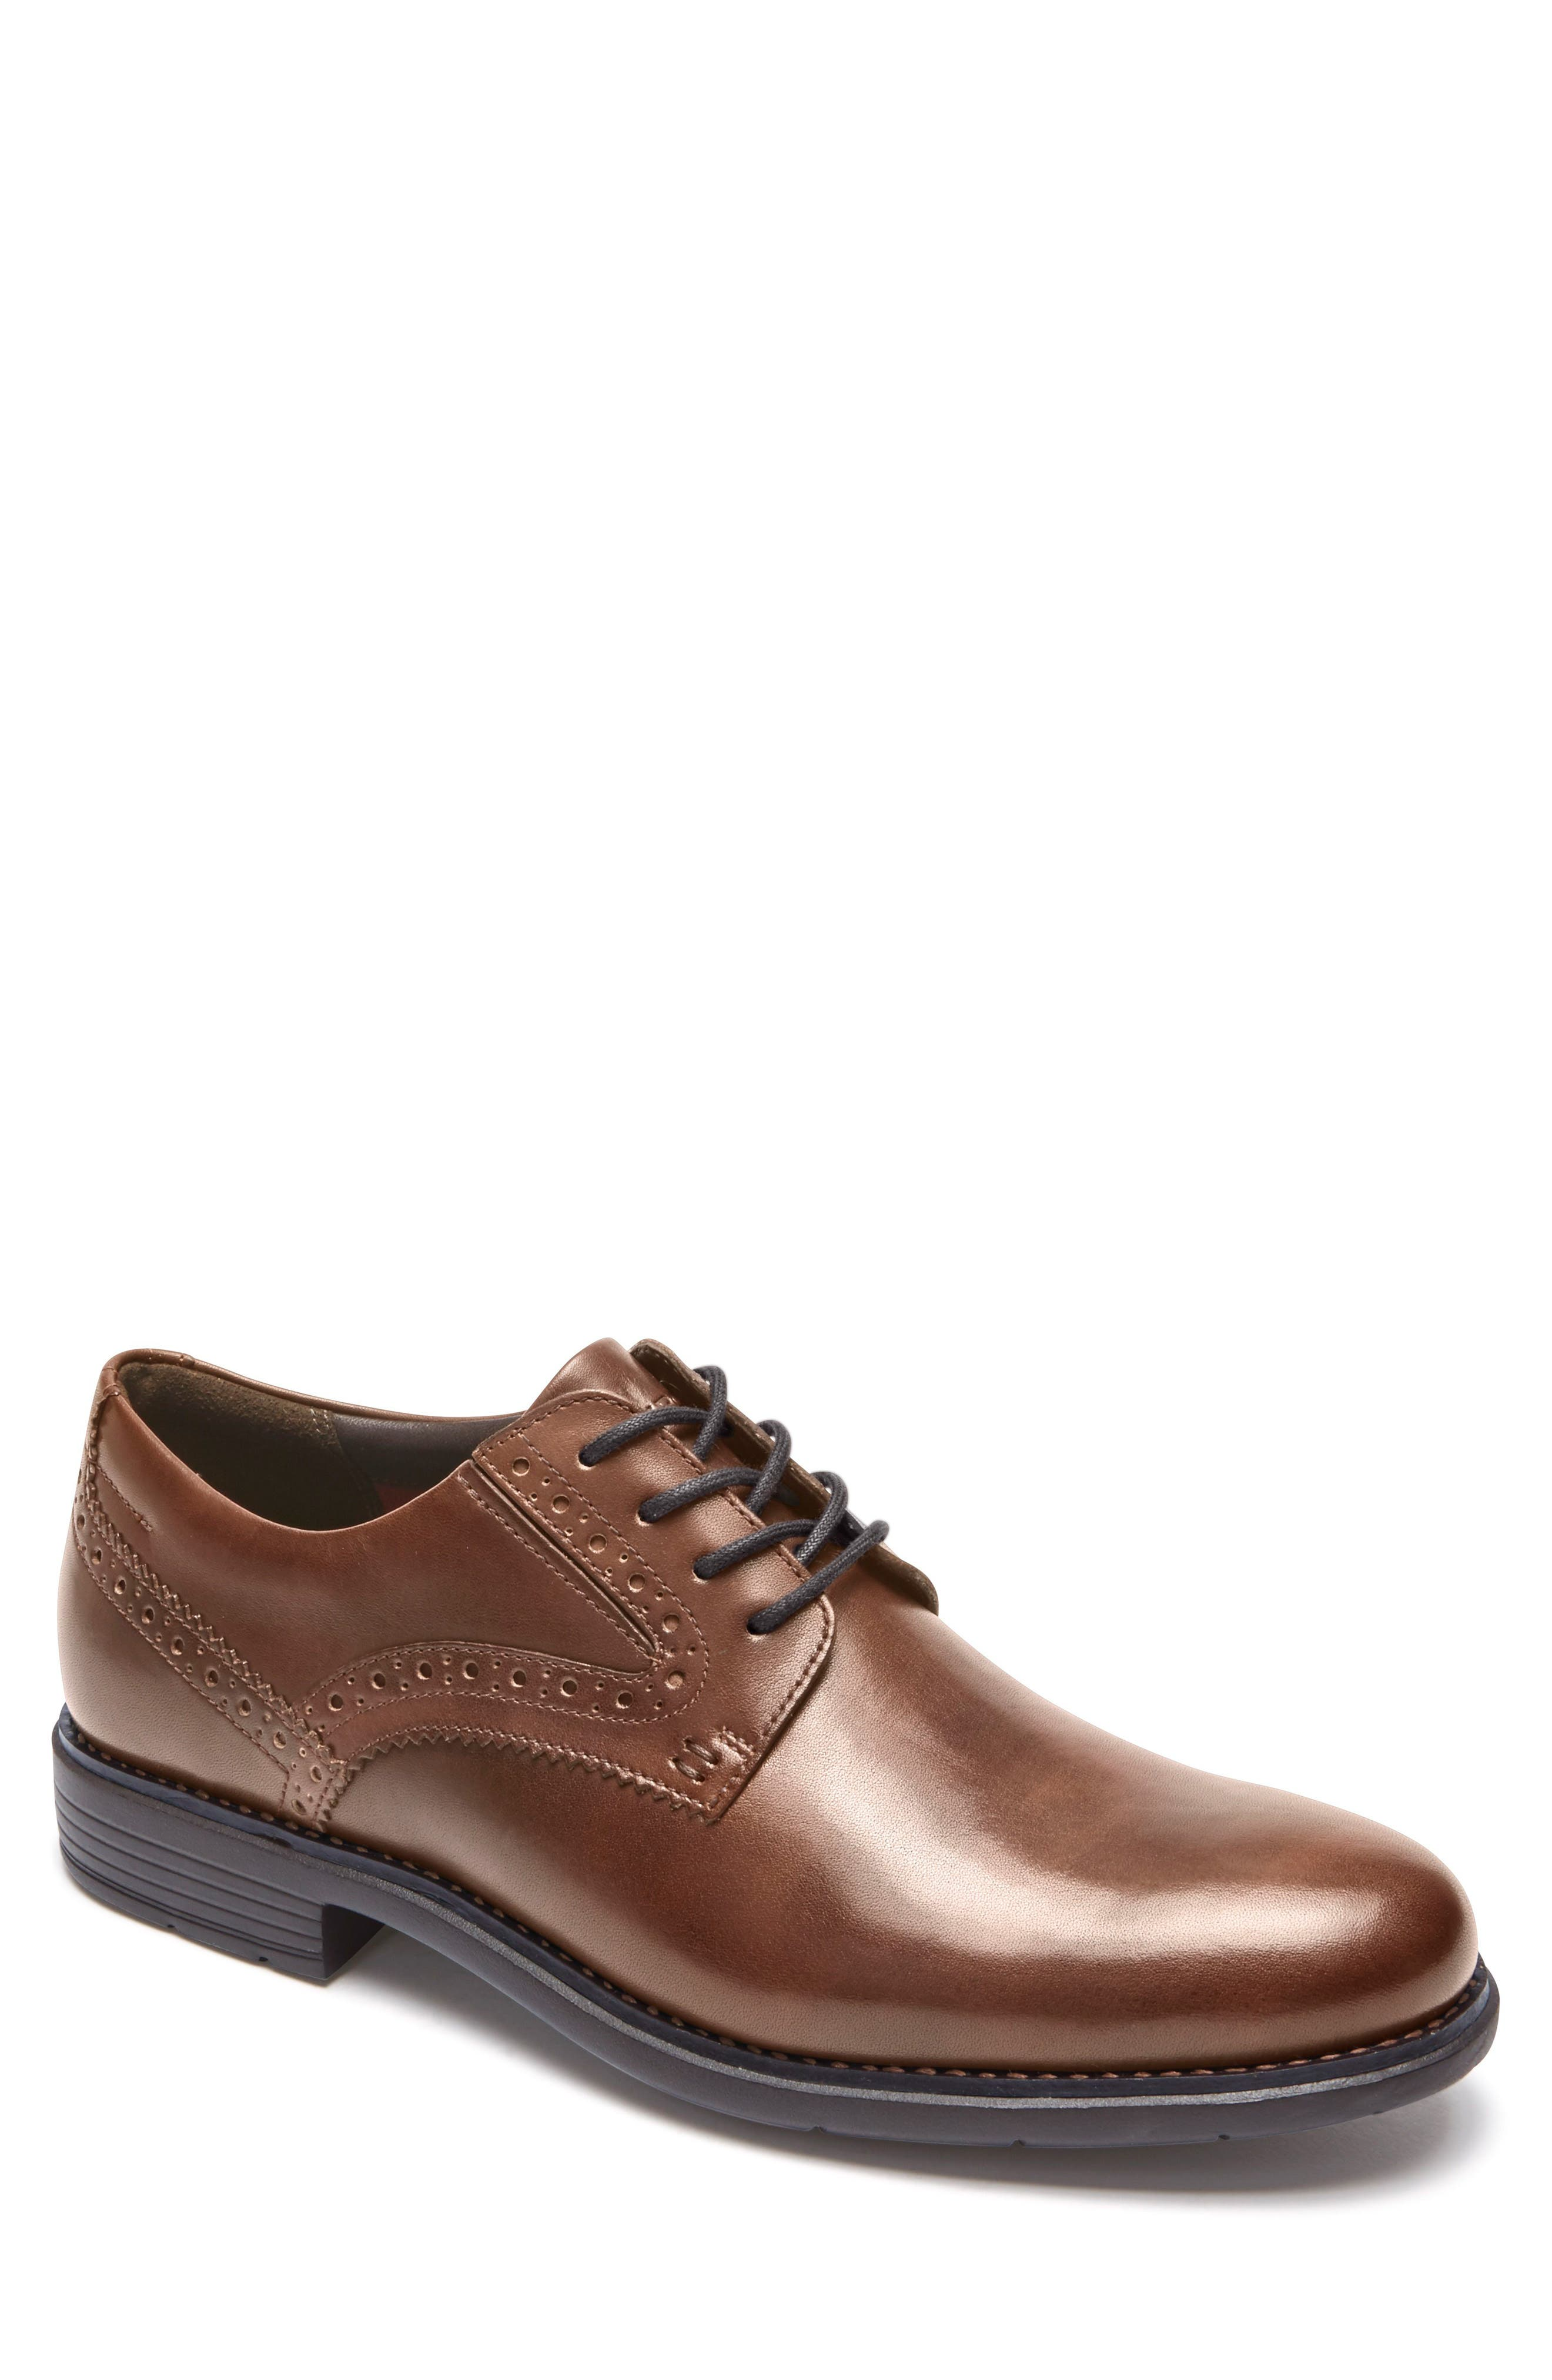 Total Motion Classic Plain Toe Derby,                             Main thumbnail 1, color,                             NEW BROWN LEATHER